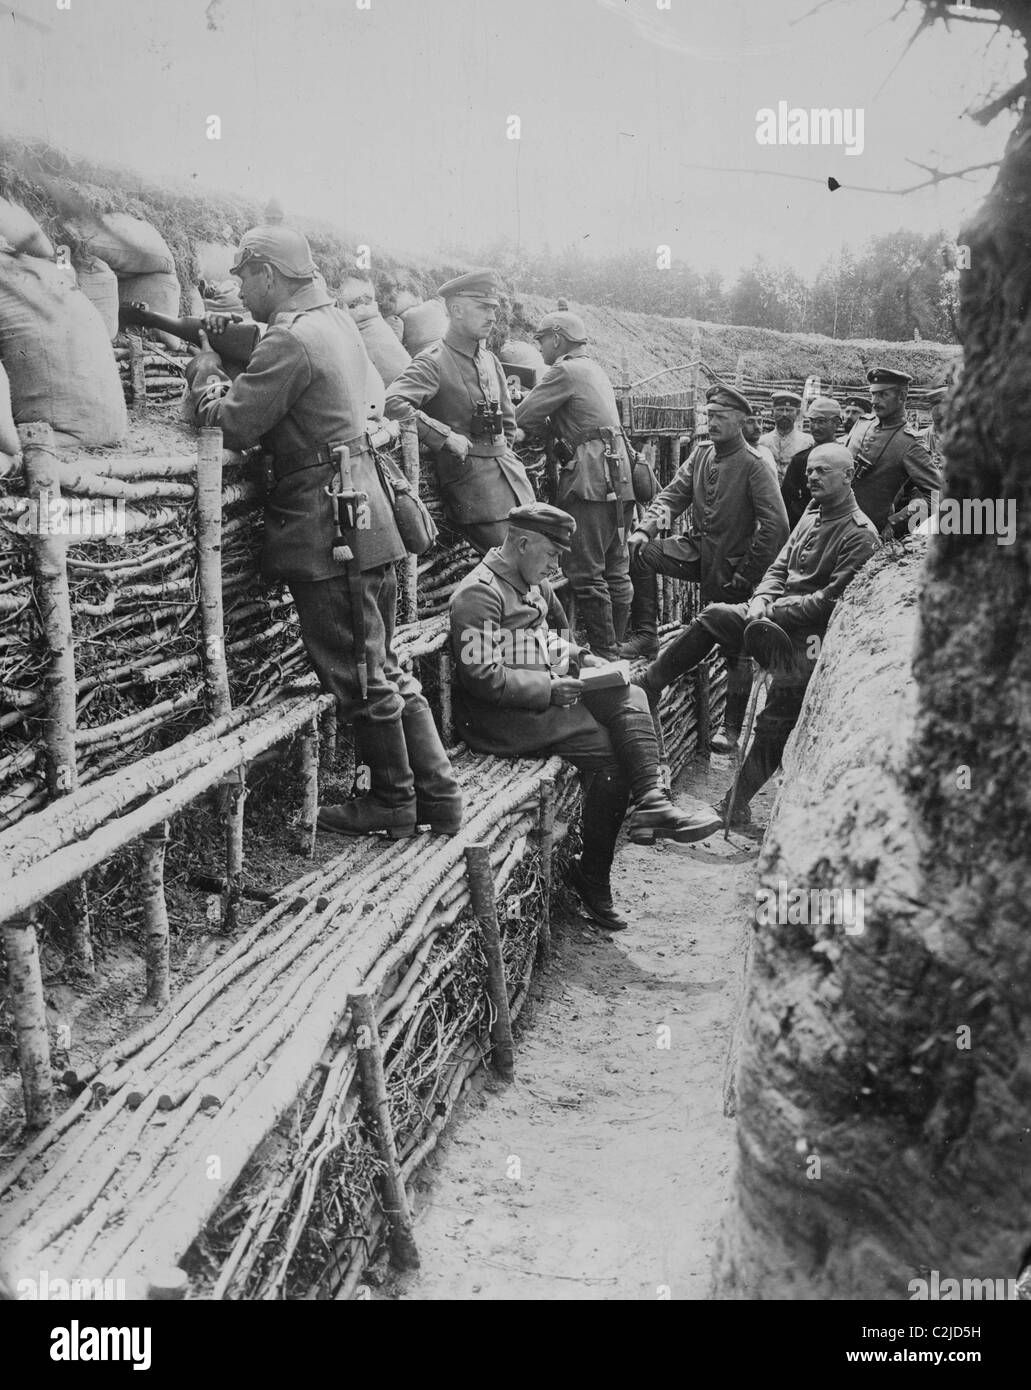 German Soldiers relax in their deep trenches which in the Stalemates of WWI have become a home. - Stock Image